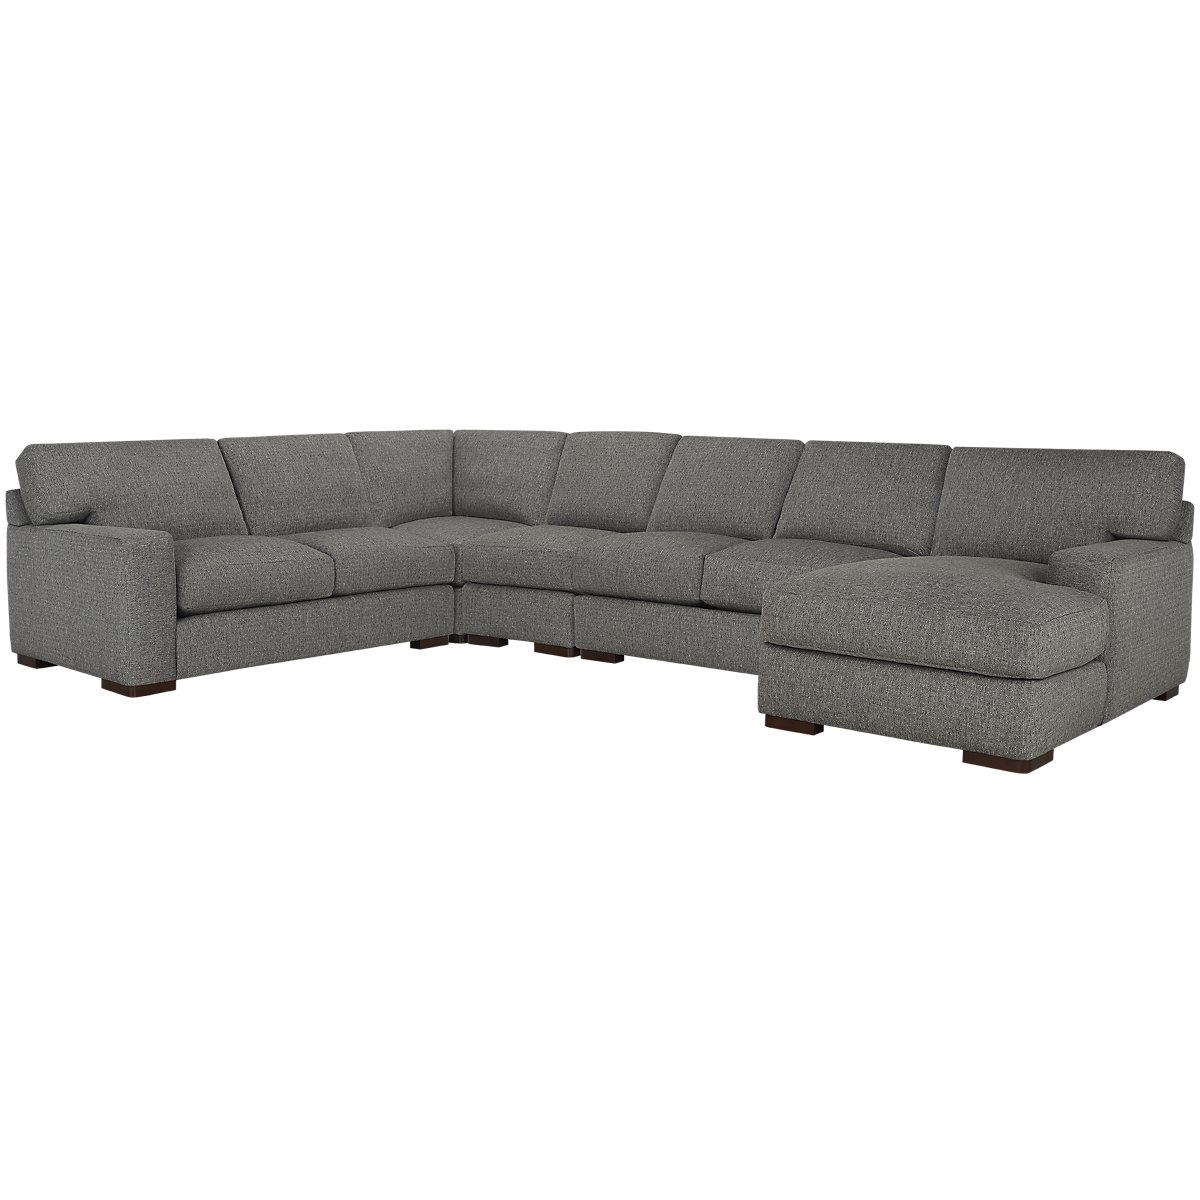 Veronica Gray Fabric Large Right Chaise Sectional